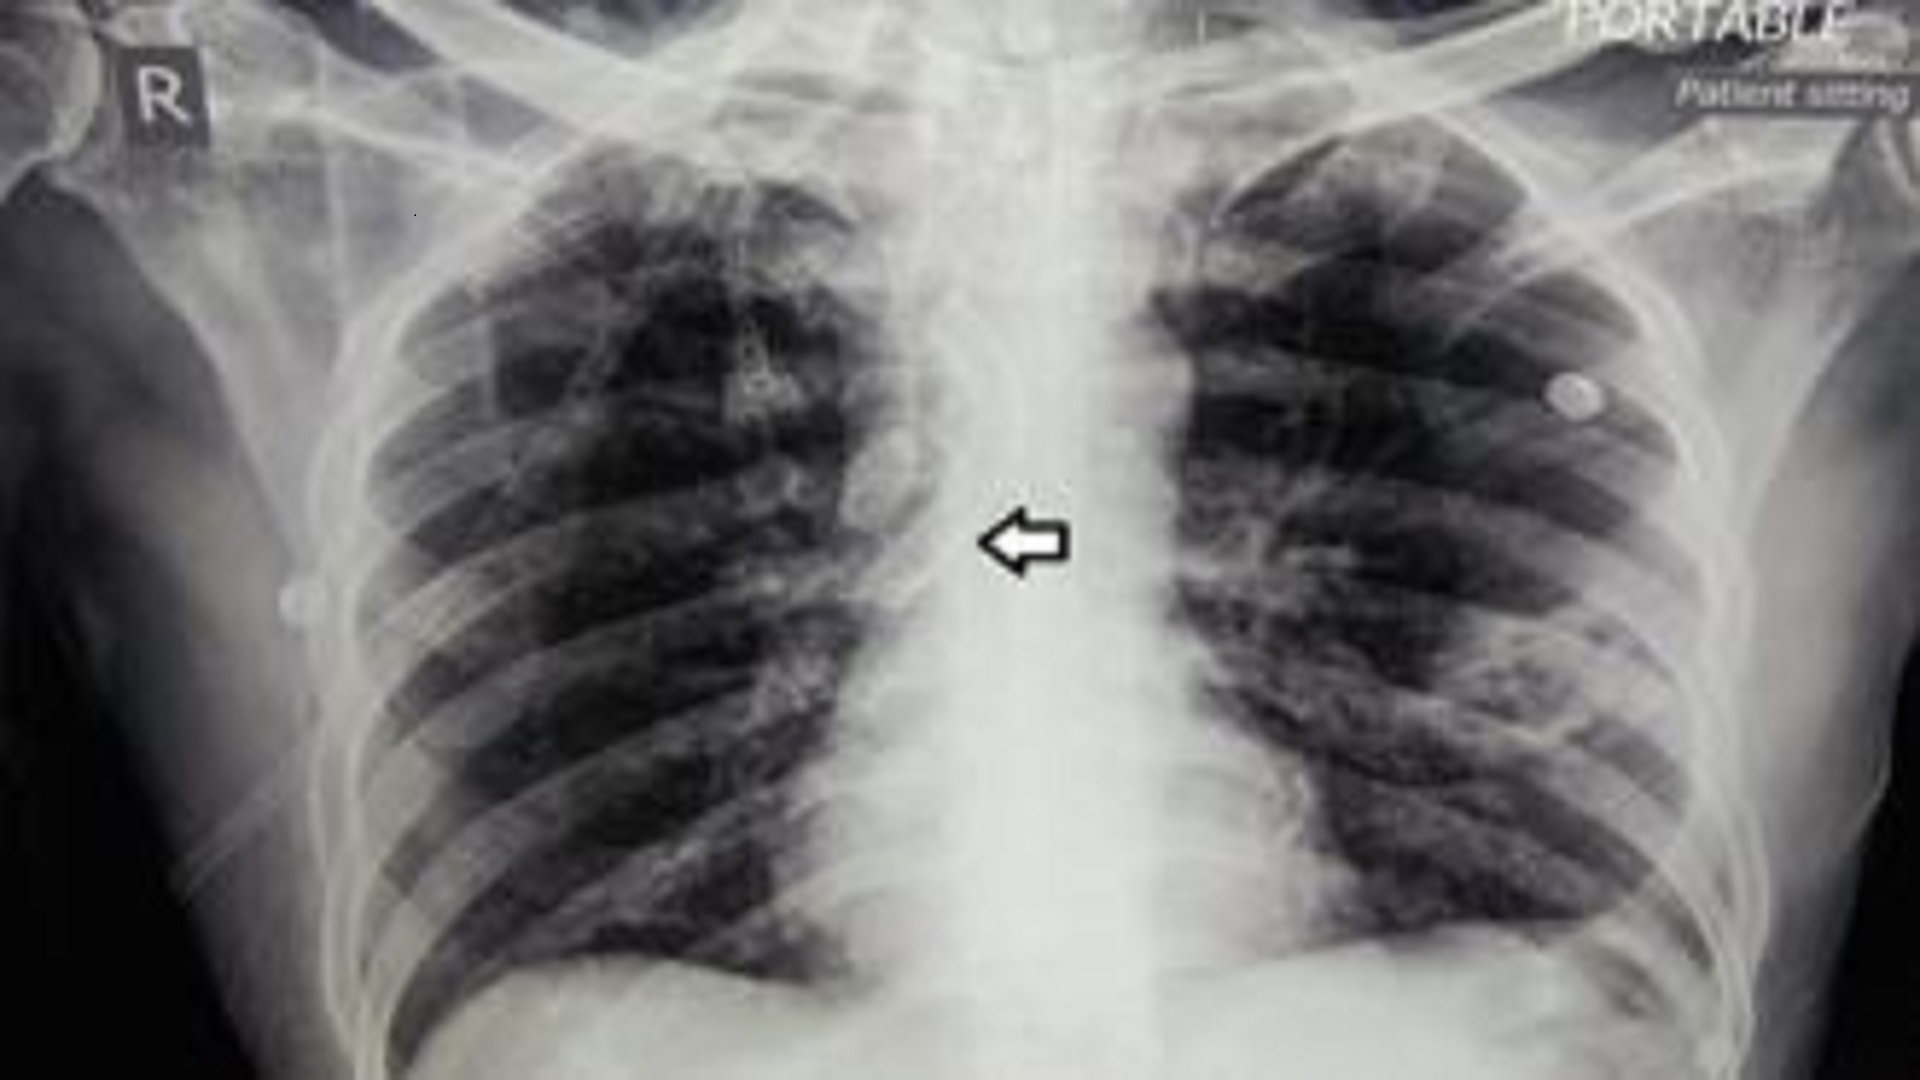 Aspiration of a Fractured Tracheostomy Tube Managed By a Rigid Bronchoscopy via Tracheostomy Stoma in a Patient with Existing Airway Compromise